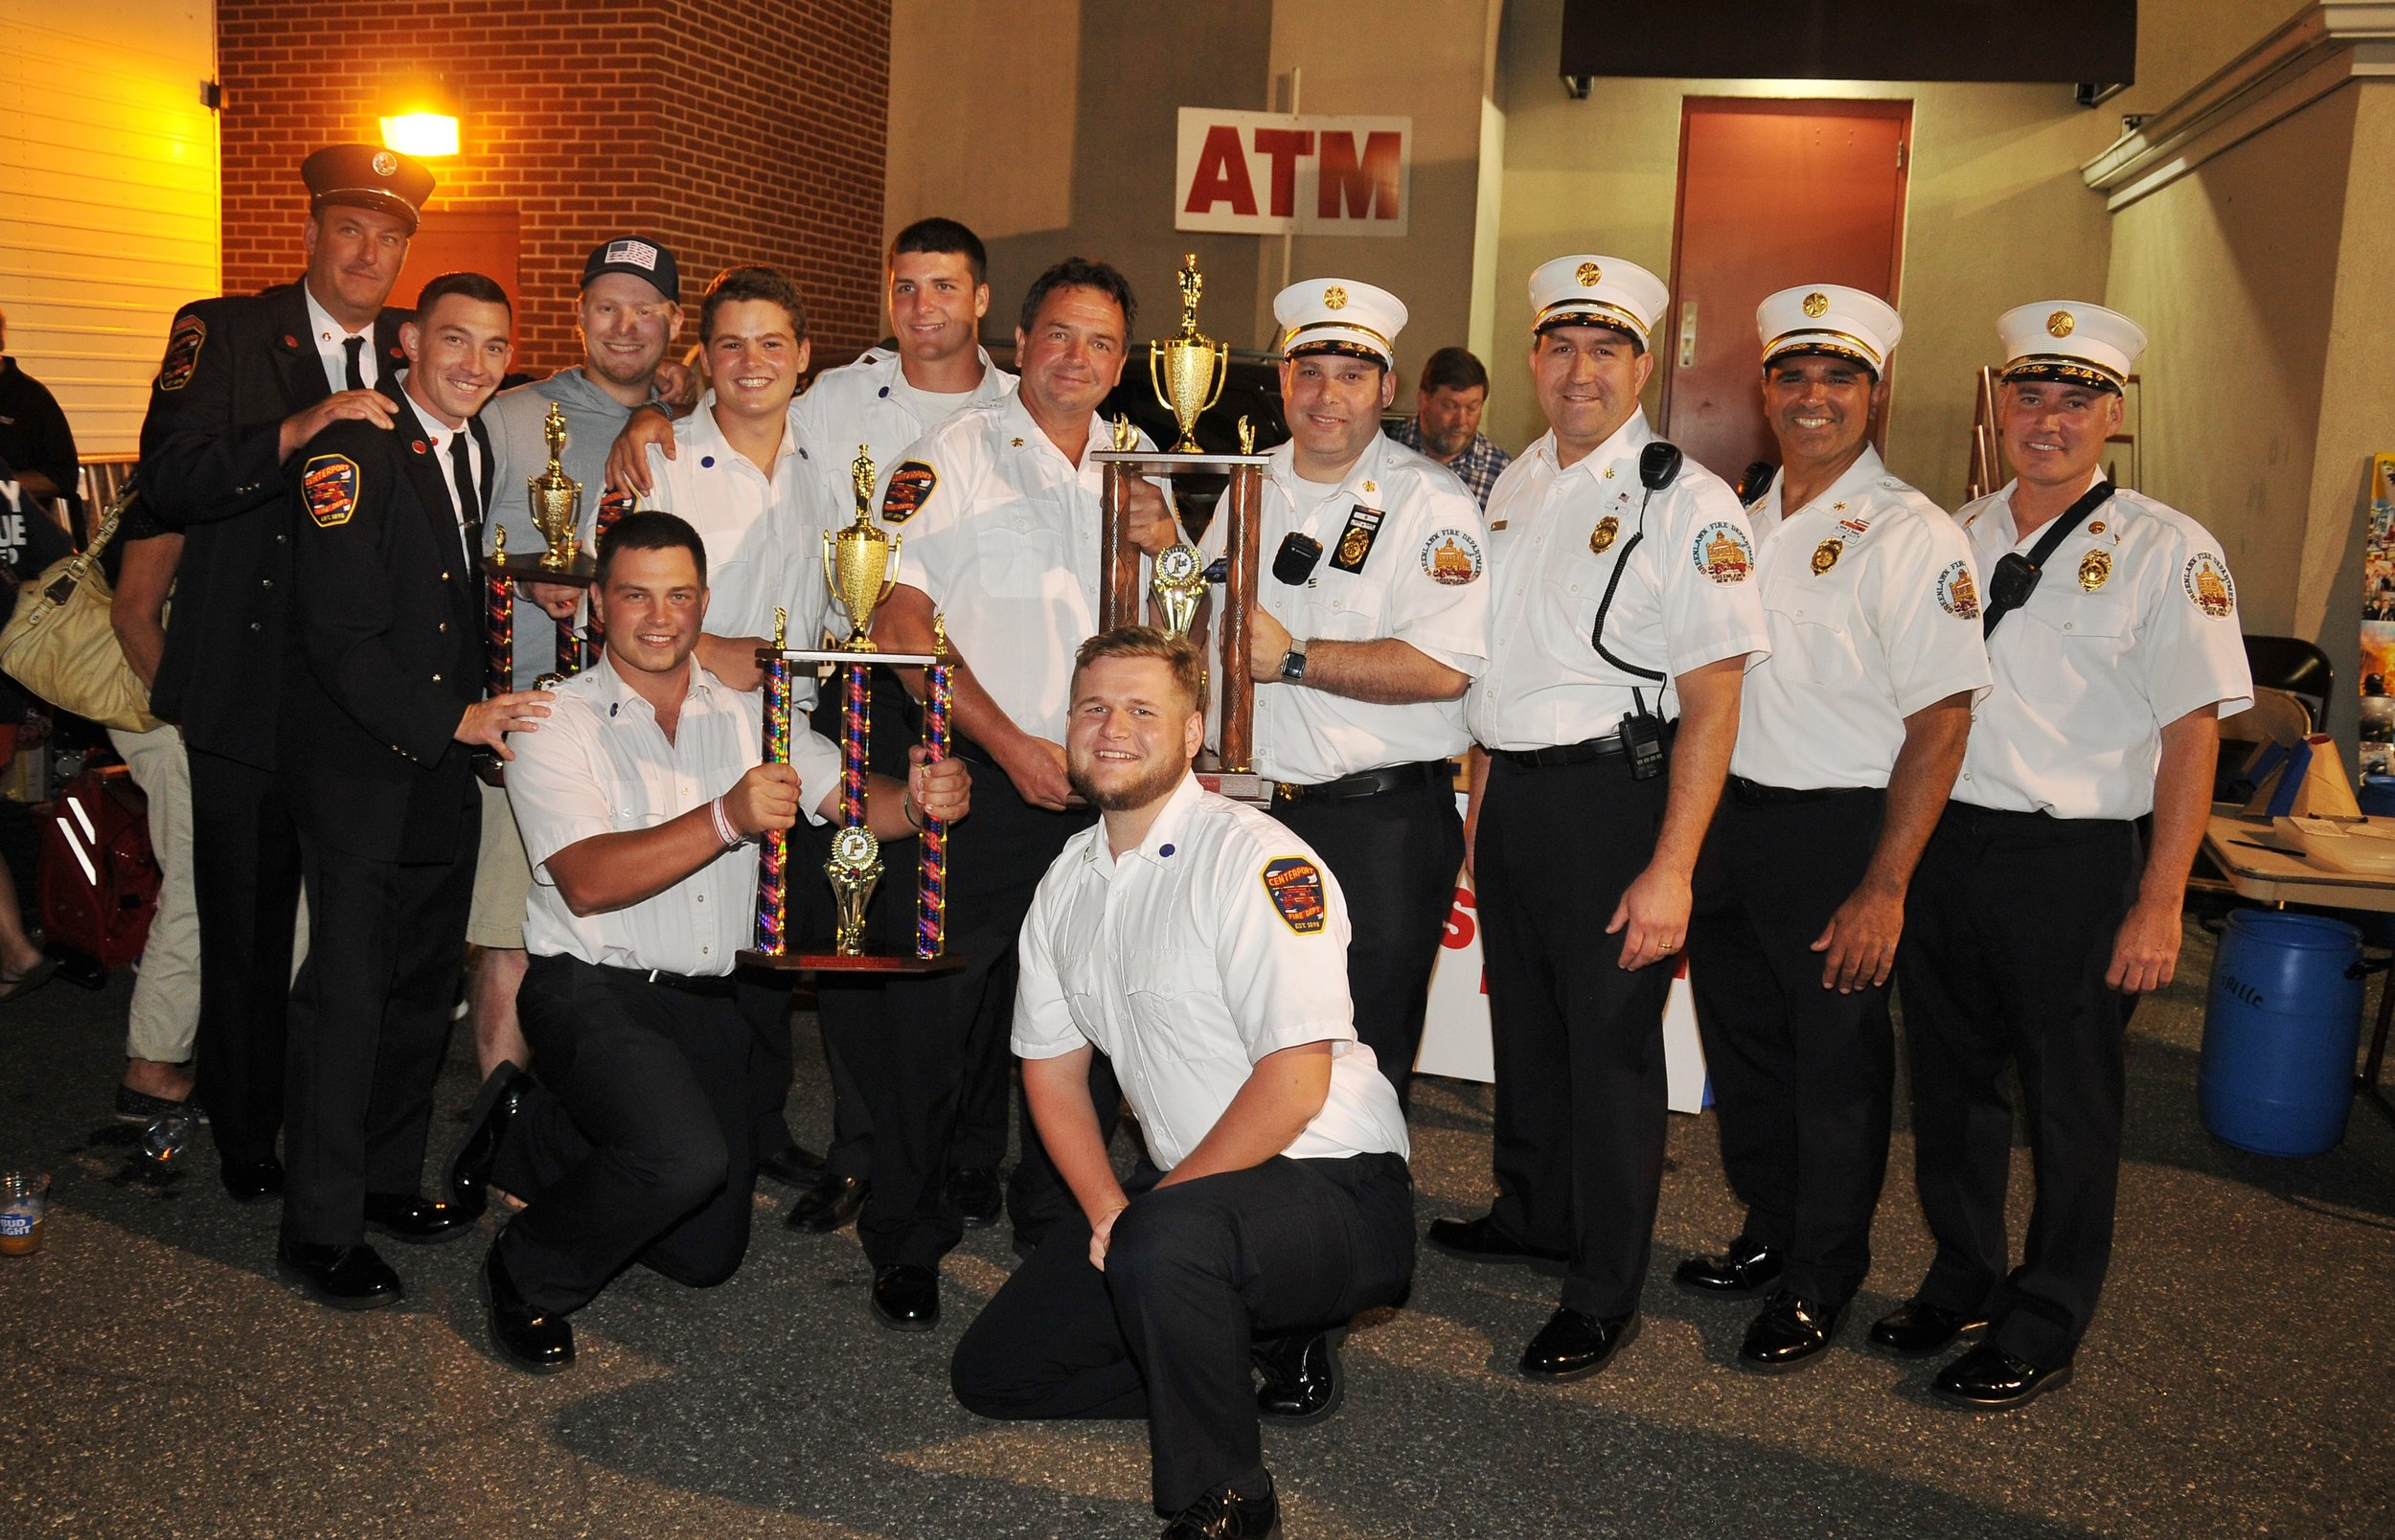 Centerport Fire Chief Tom Boyd and firefighters receive trophies from Greenlawn Fire Chief Mike Bellis and his assistant chiefs for Centerport's participation in this year's parade.   Photo Courtesy of Steve Silverman